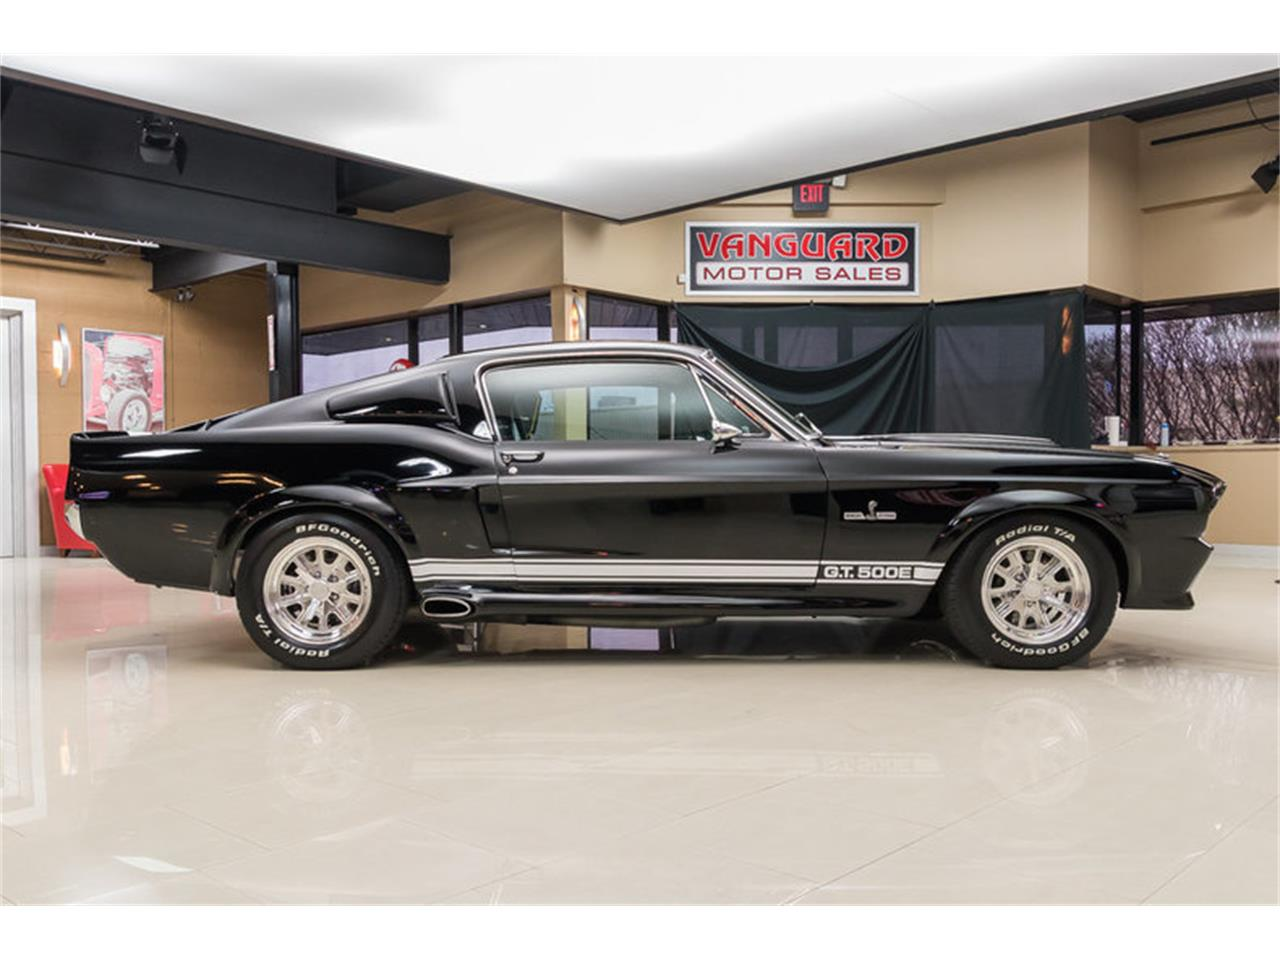 1968 Ford Mustang Fastback Black Eleanor for Sale ...1968 Mustang Coupe Black